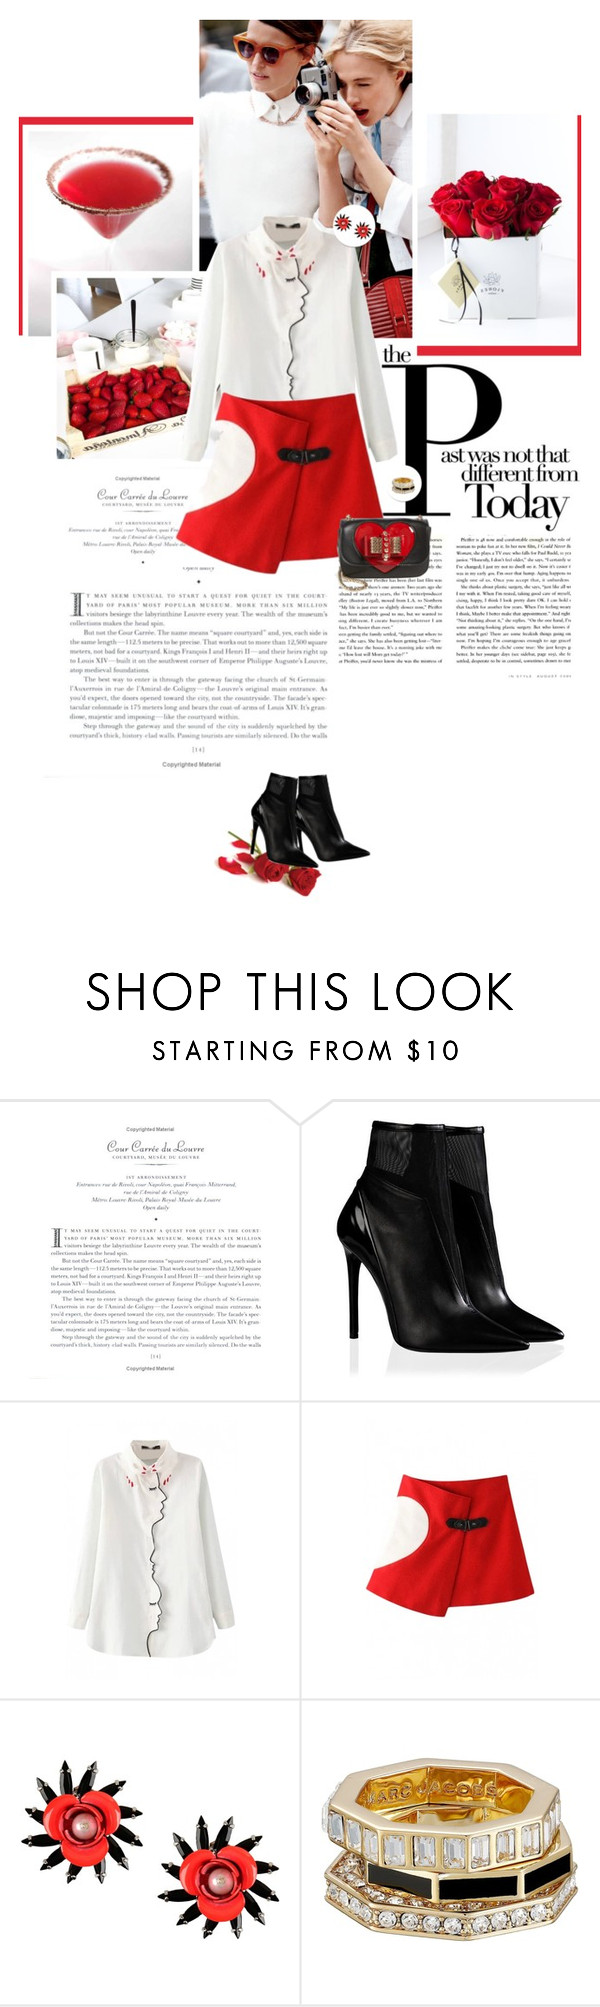 """""""Beautiful Halo XXIV"""" by dreamer-ena ❤ liked on Polyvore featuring MSGM, Marc by Marc Jacobs, Christian Louboutin, booties, whiteshirt, redskirt and bhalo"""